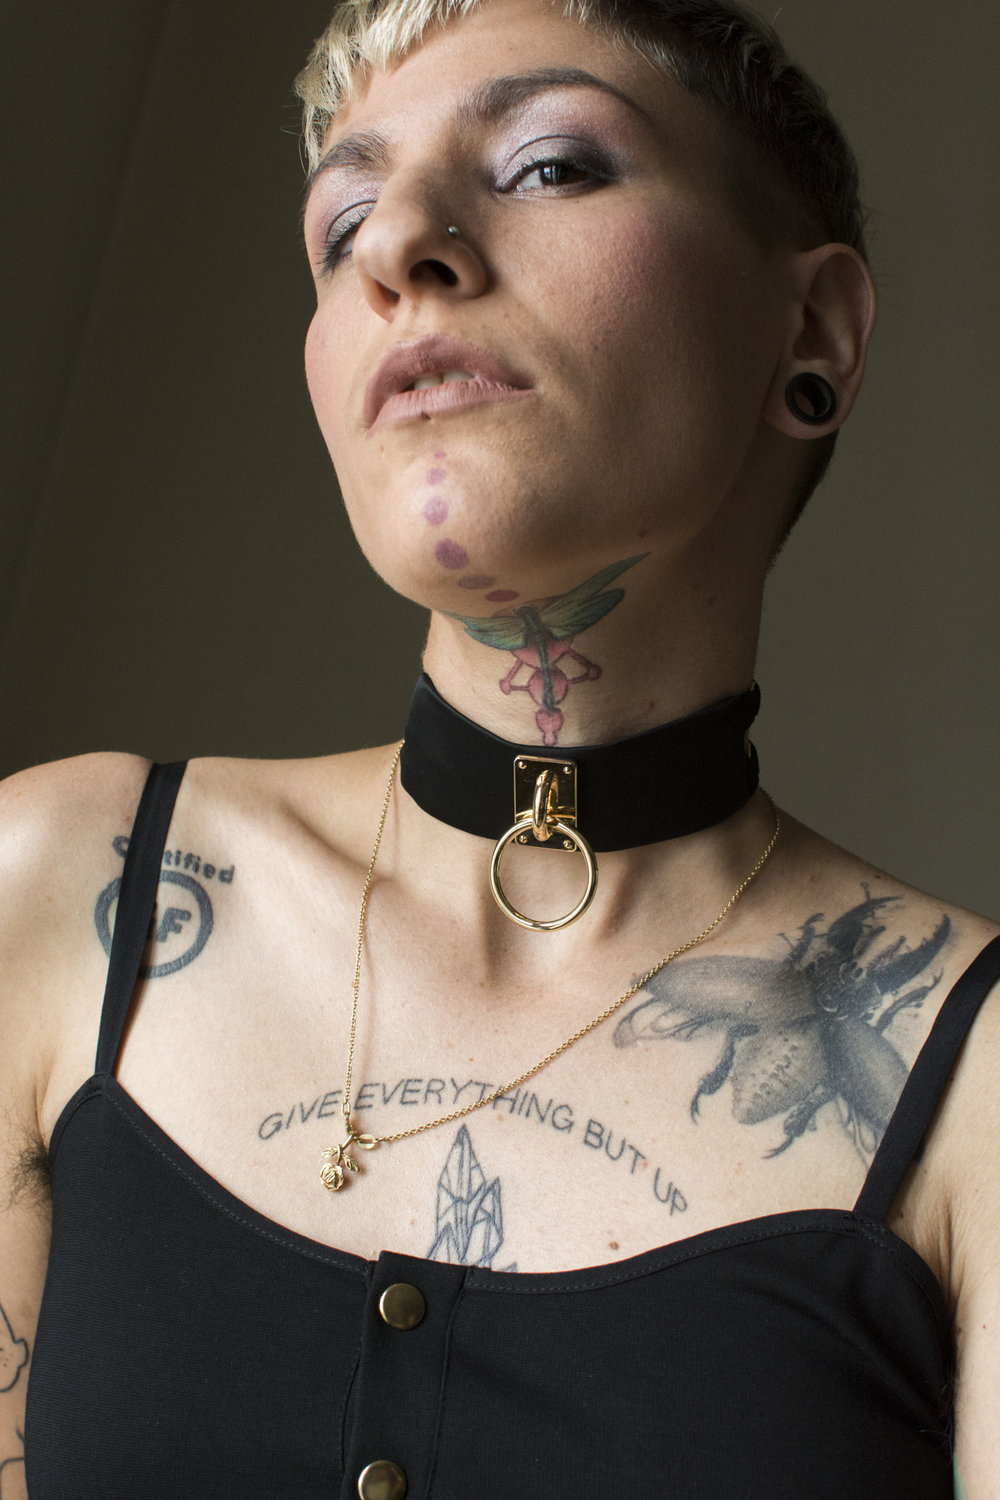 murmur clothing choker teddy gold straps_02.JPG